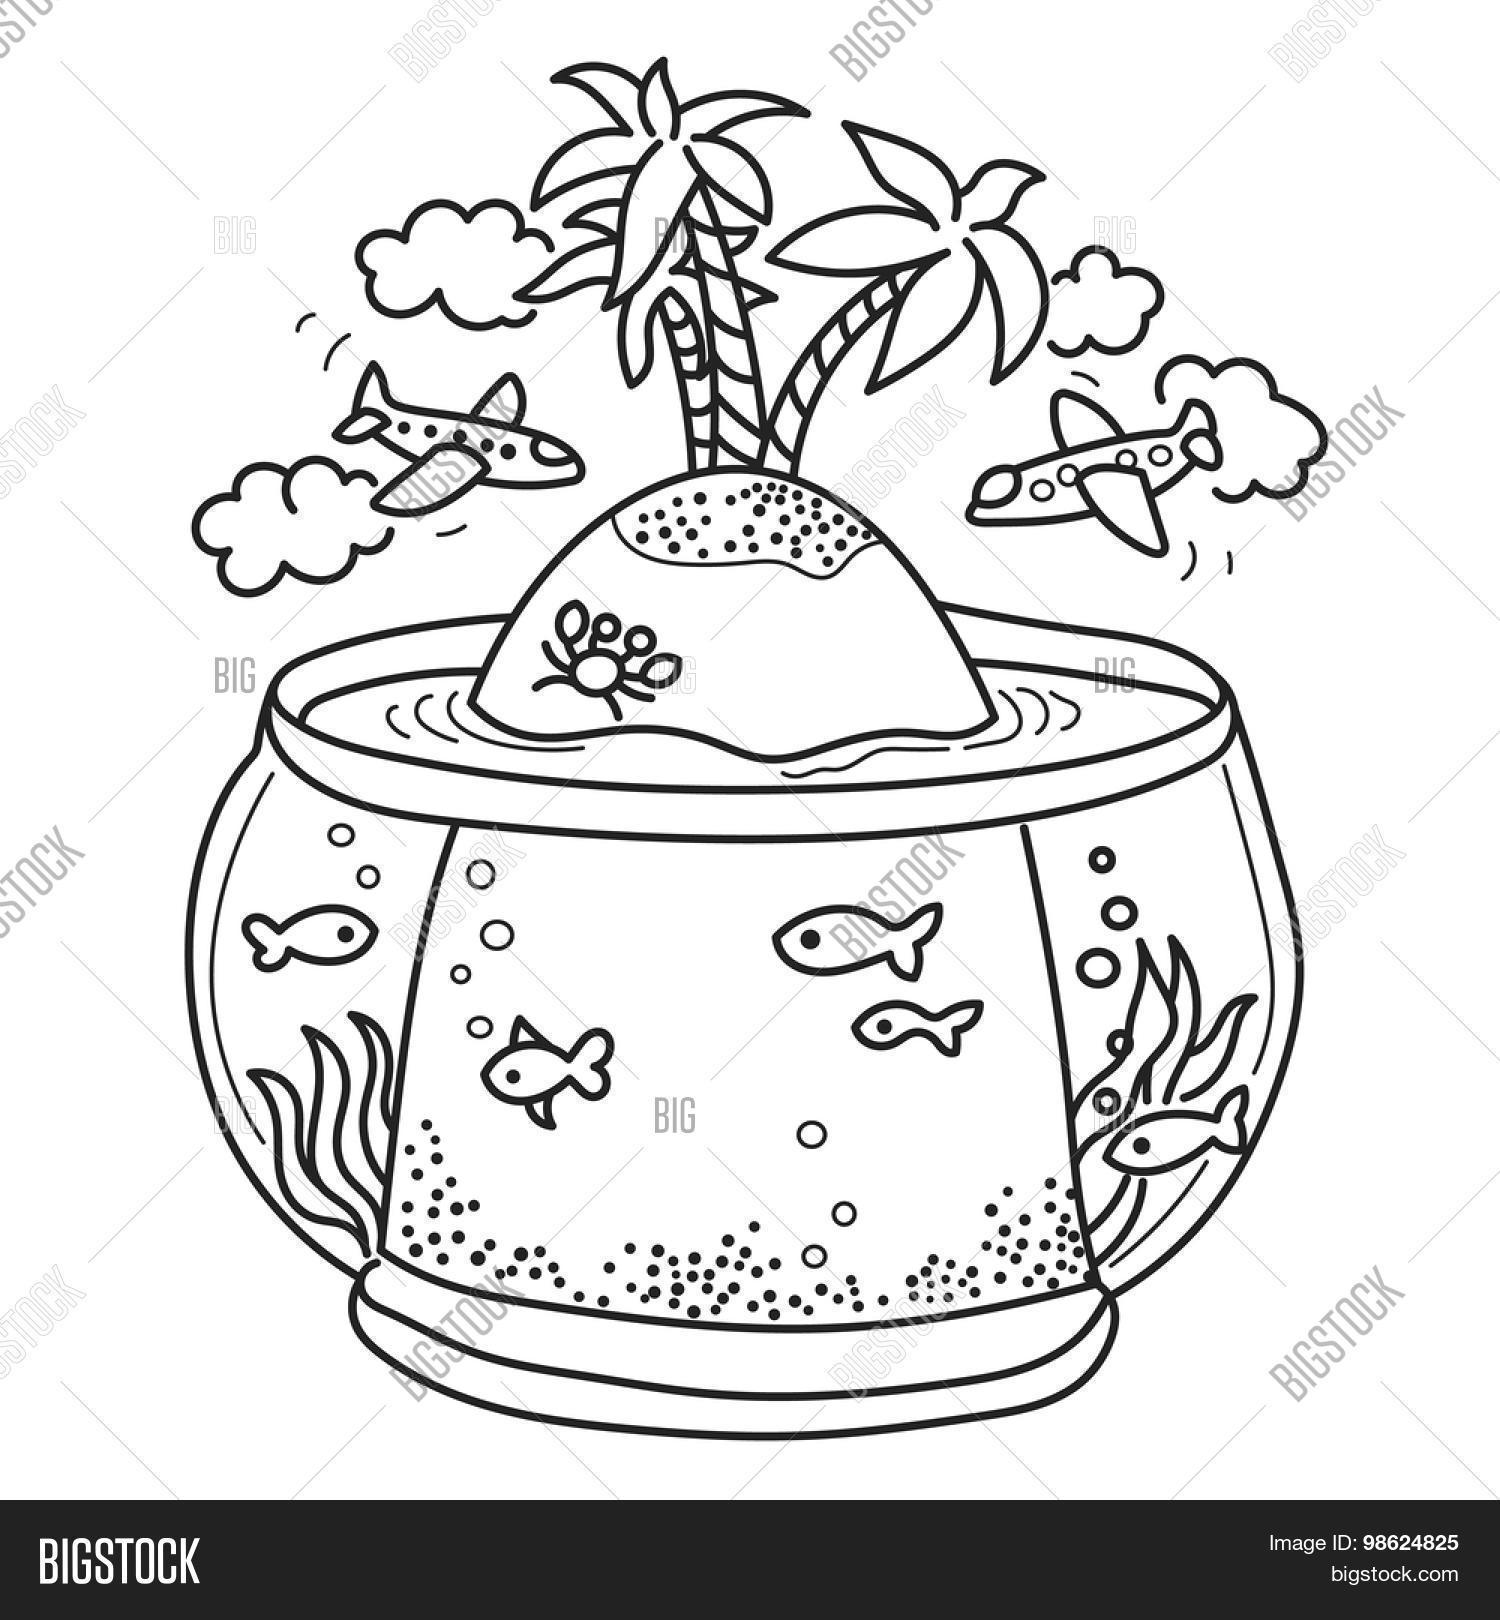 Freehand Drawing - Paradise Island Vector & Photo